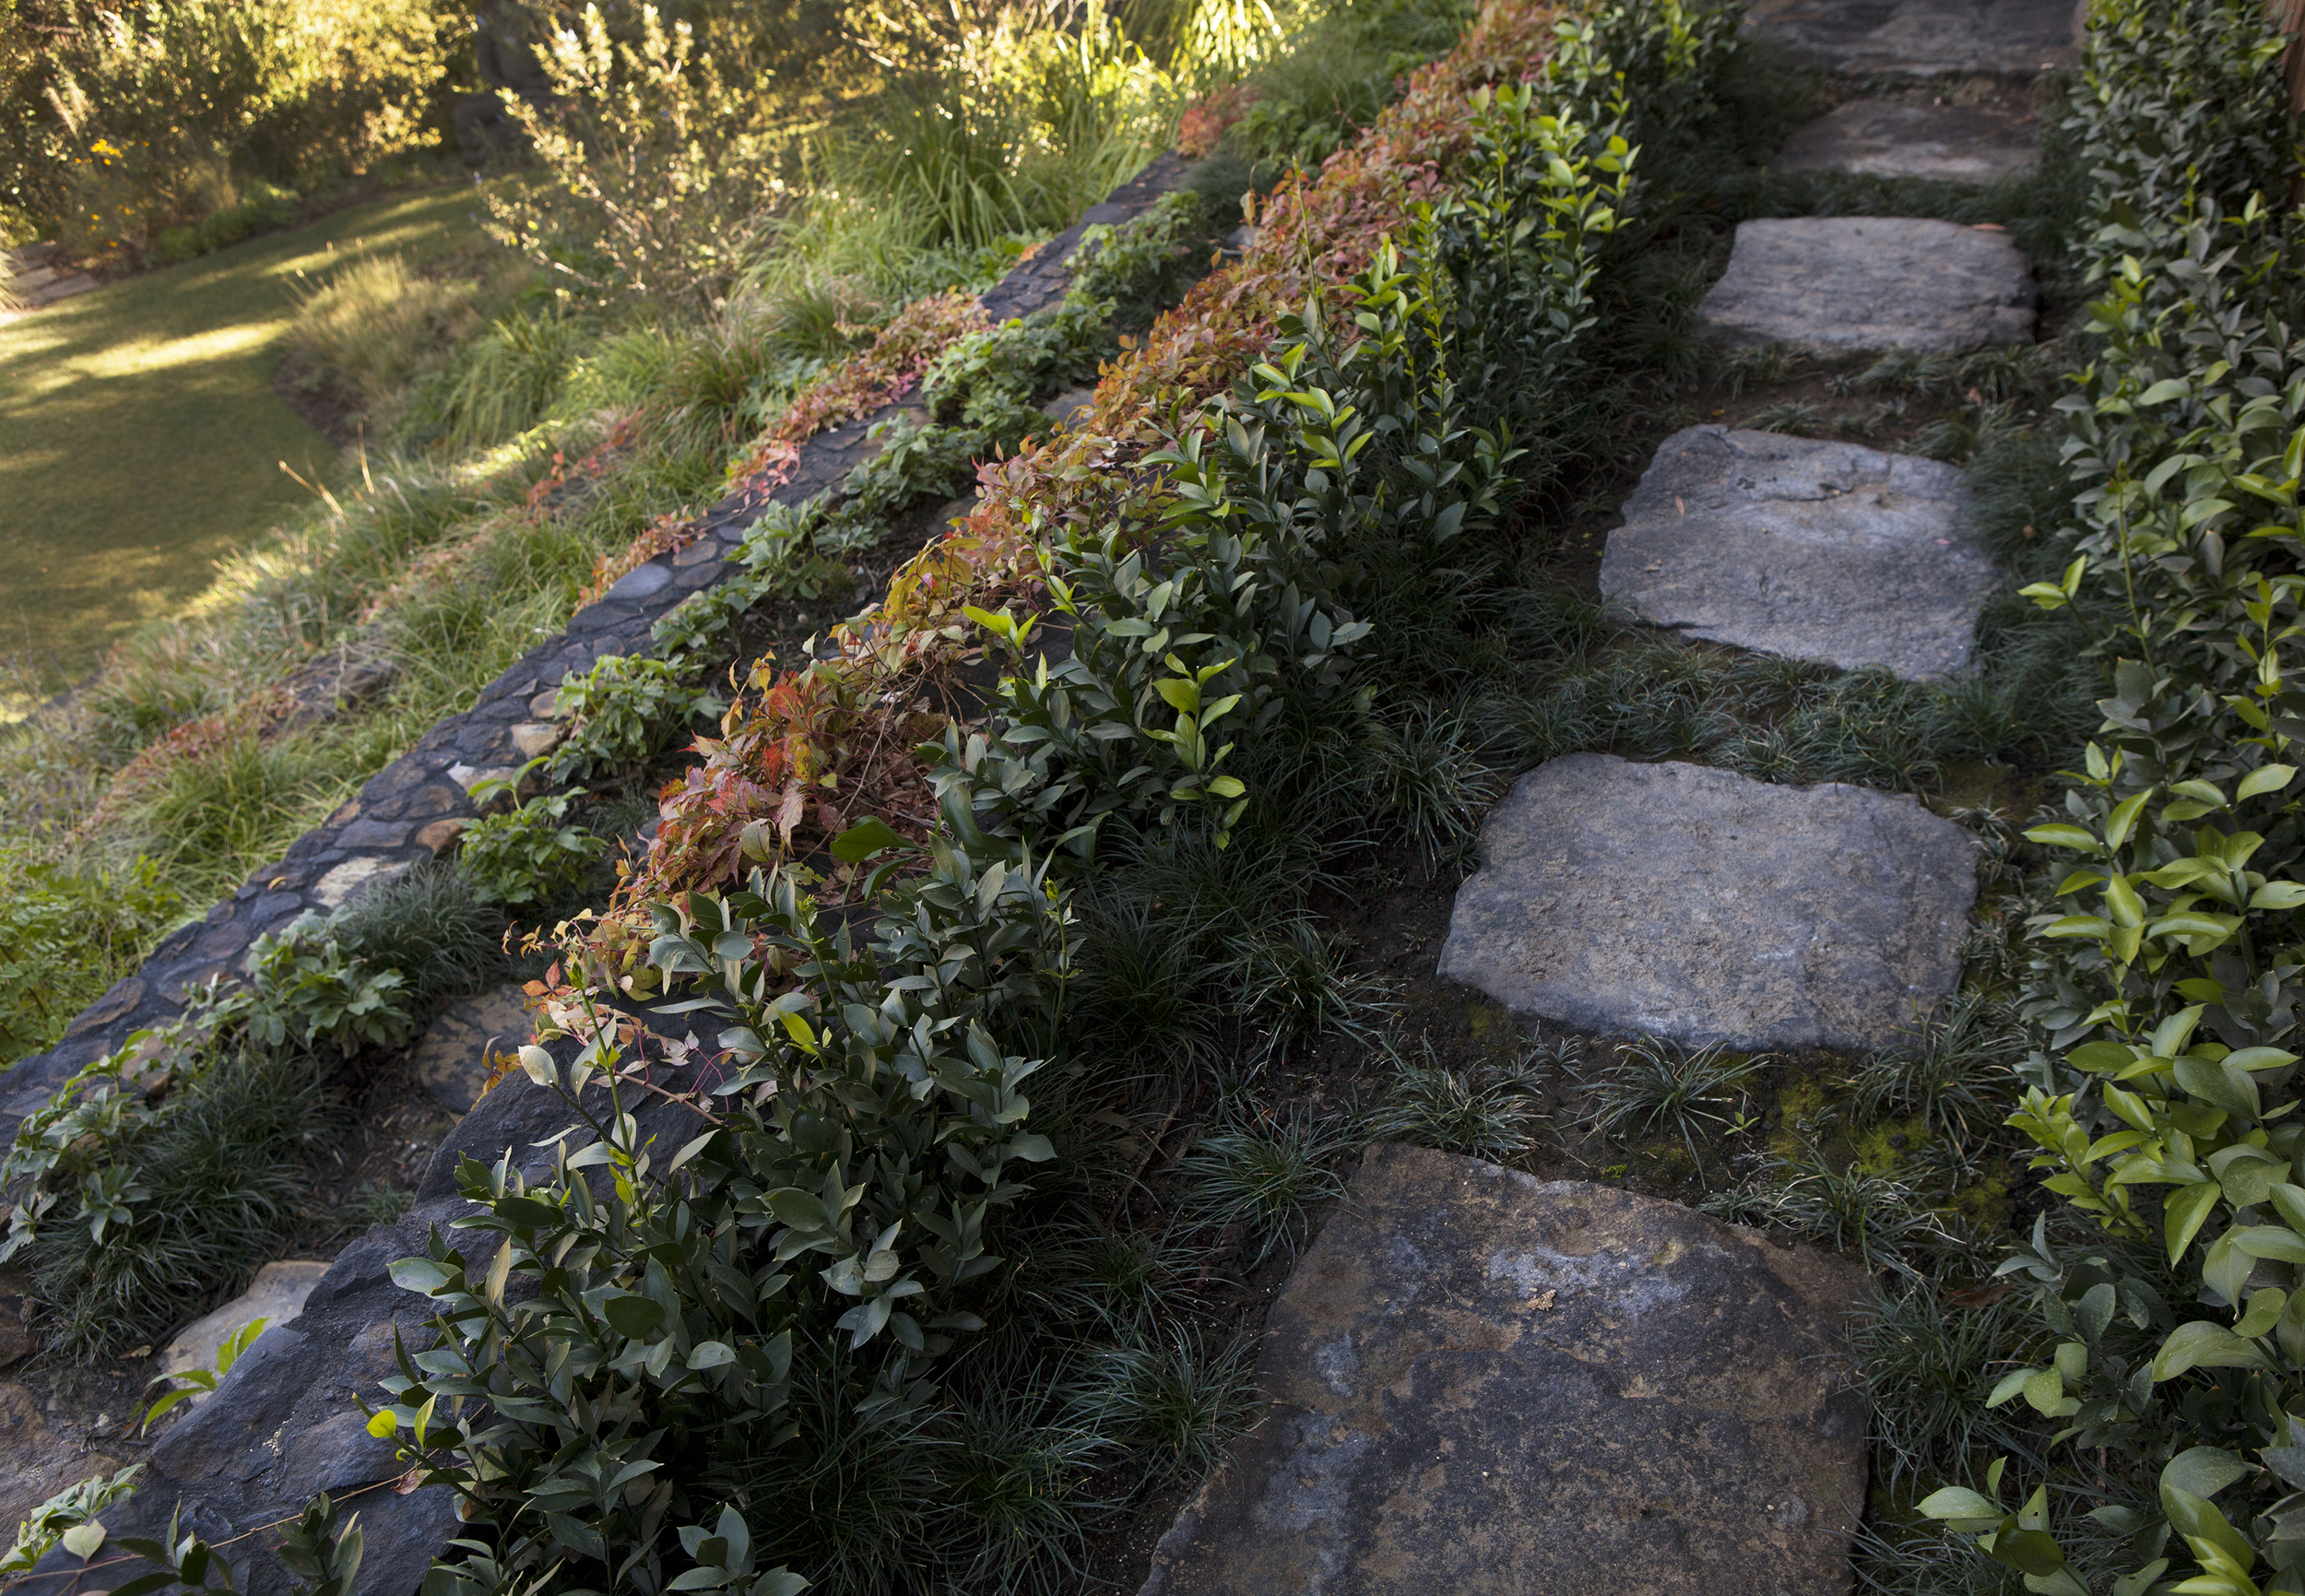 Terraced garden with custom designed split face boulder outdoor steps - Topanga Canyon - Los Angeles garden design by Campion Walker Landscapes